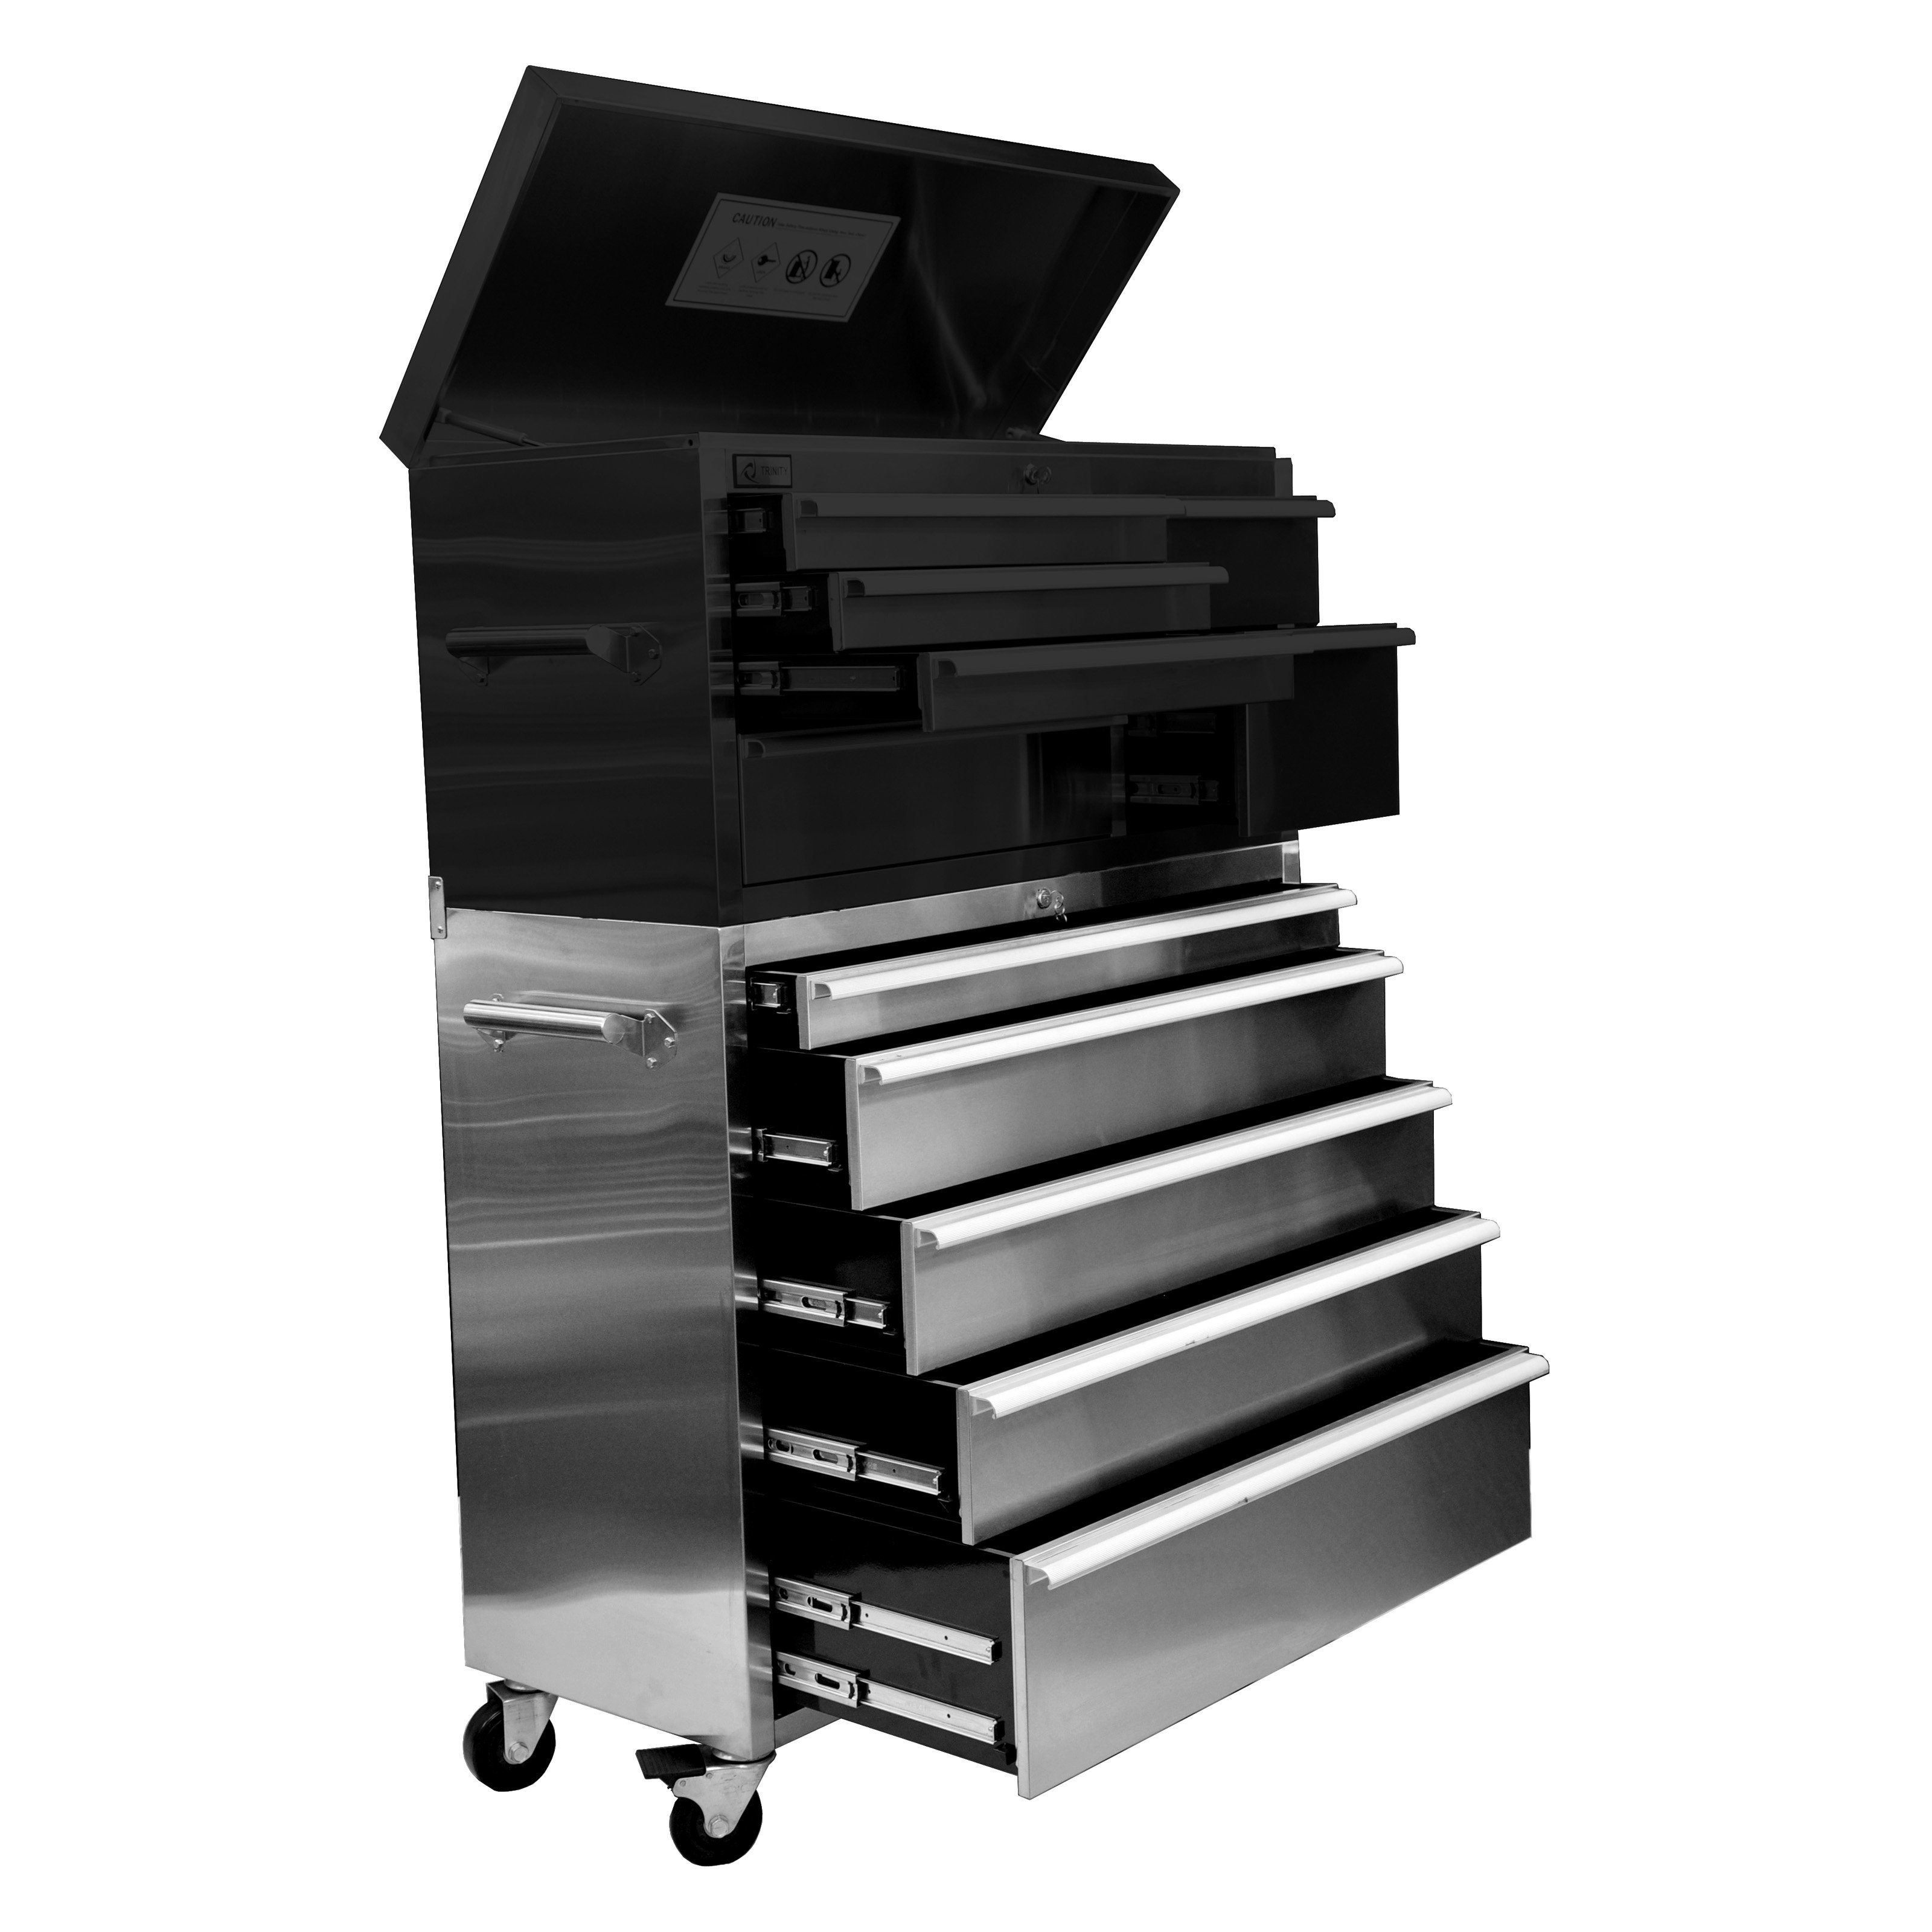 stainless steel roller tool chest walmartcom - Tool Cabinets